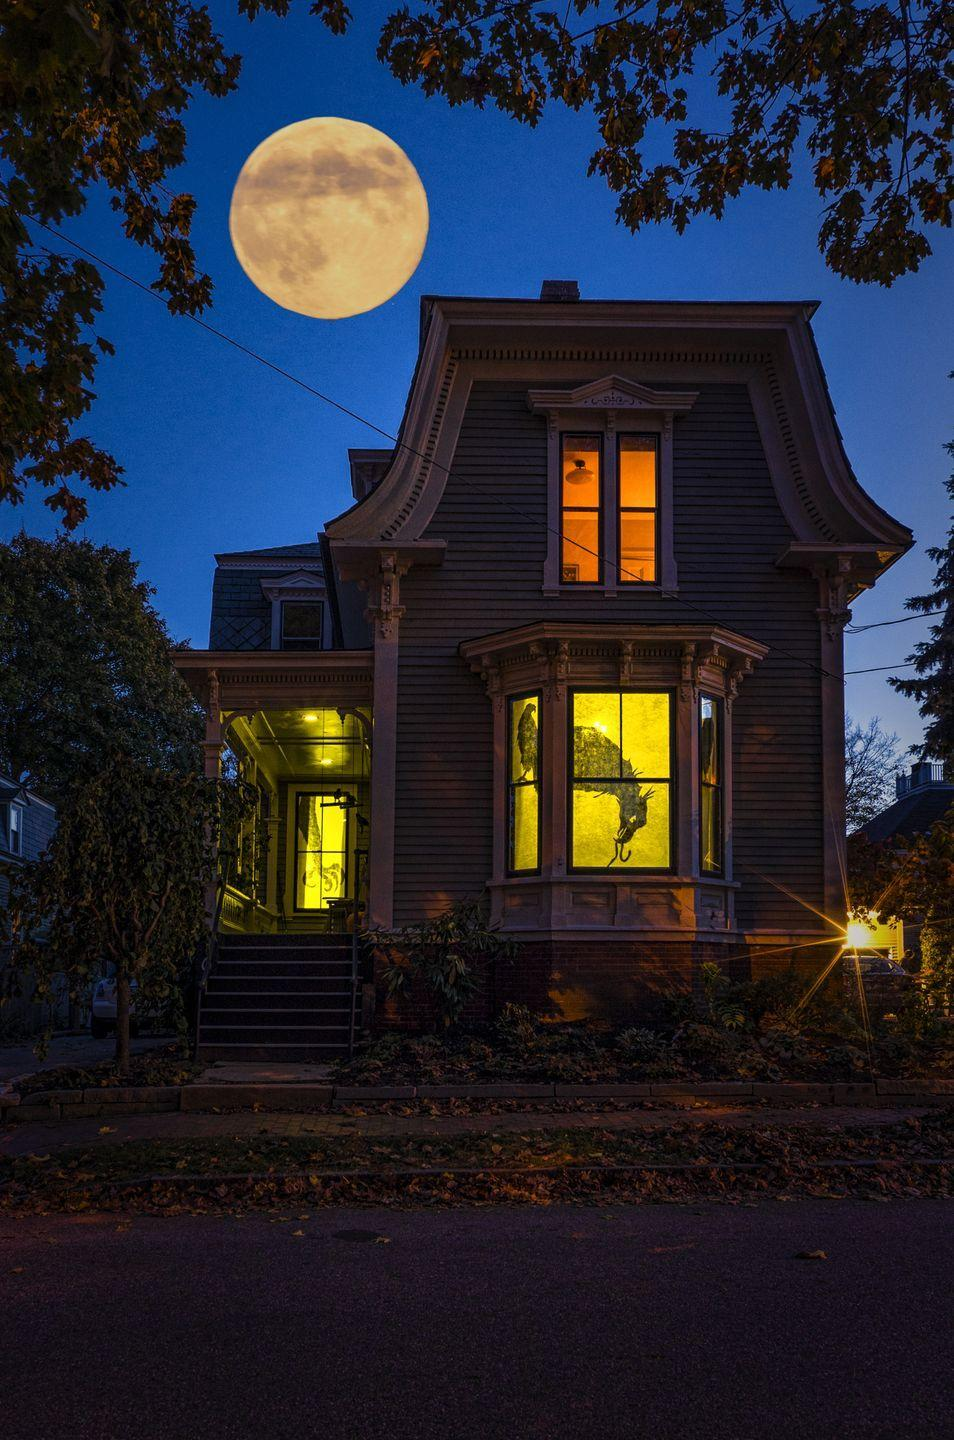 <p><strong><em>What year will have the next Halloween with a full moon?</em></strong></p><p><strong>Answer:</strong> 2020. The previous Halloween with a full moon was back in 2001 and after this year, you'll have to wait another 19 years to see another full moon on Halloween night in 2039.</p>